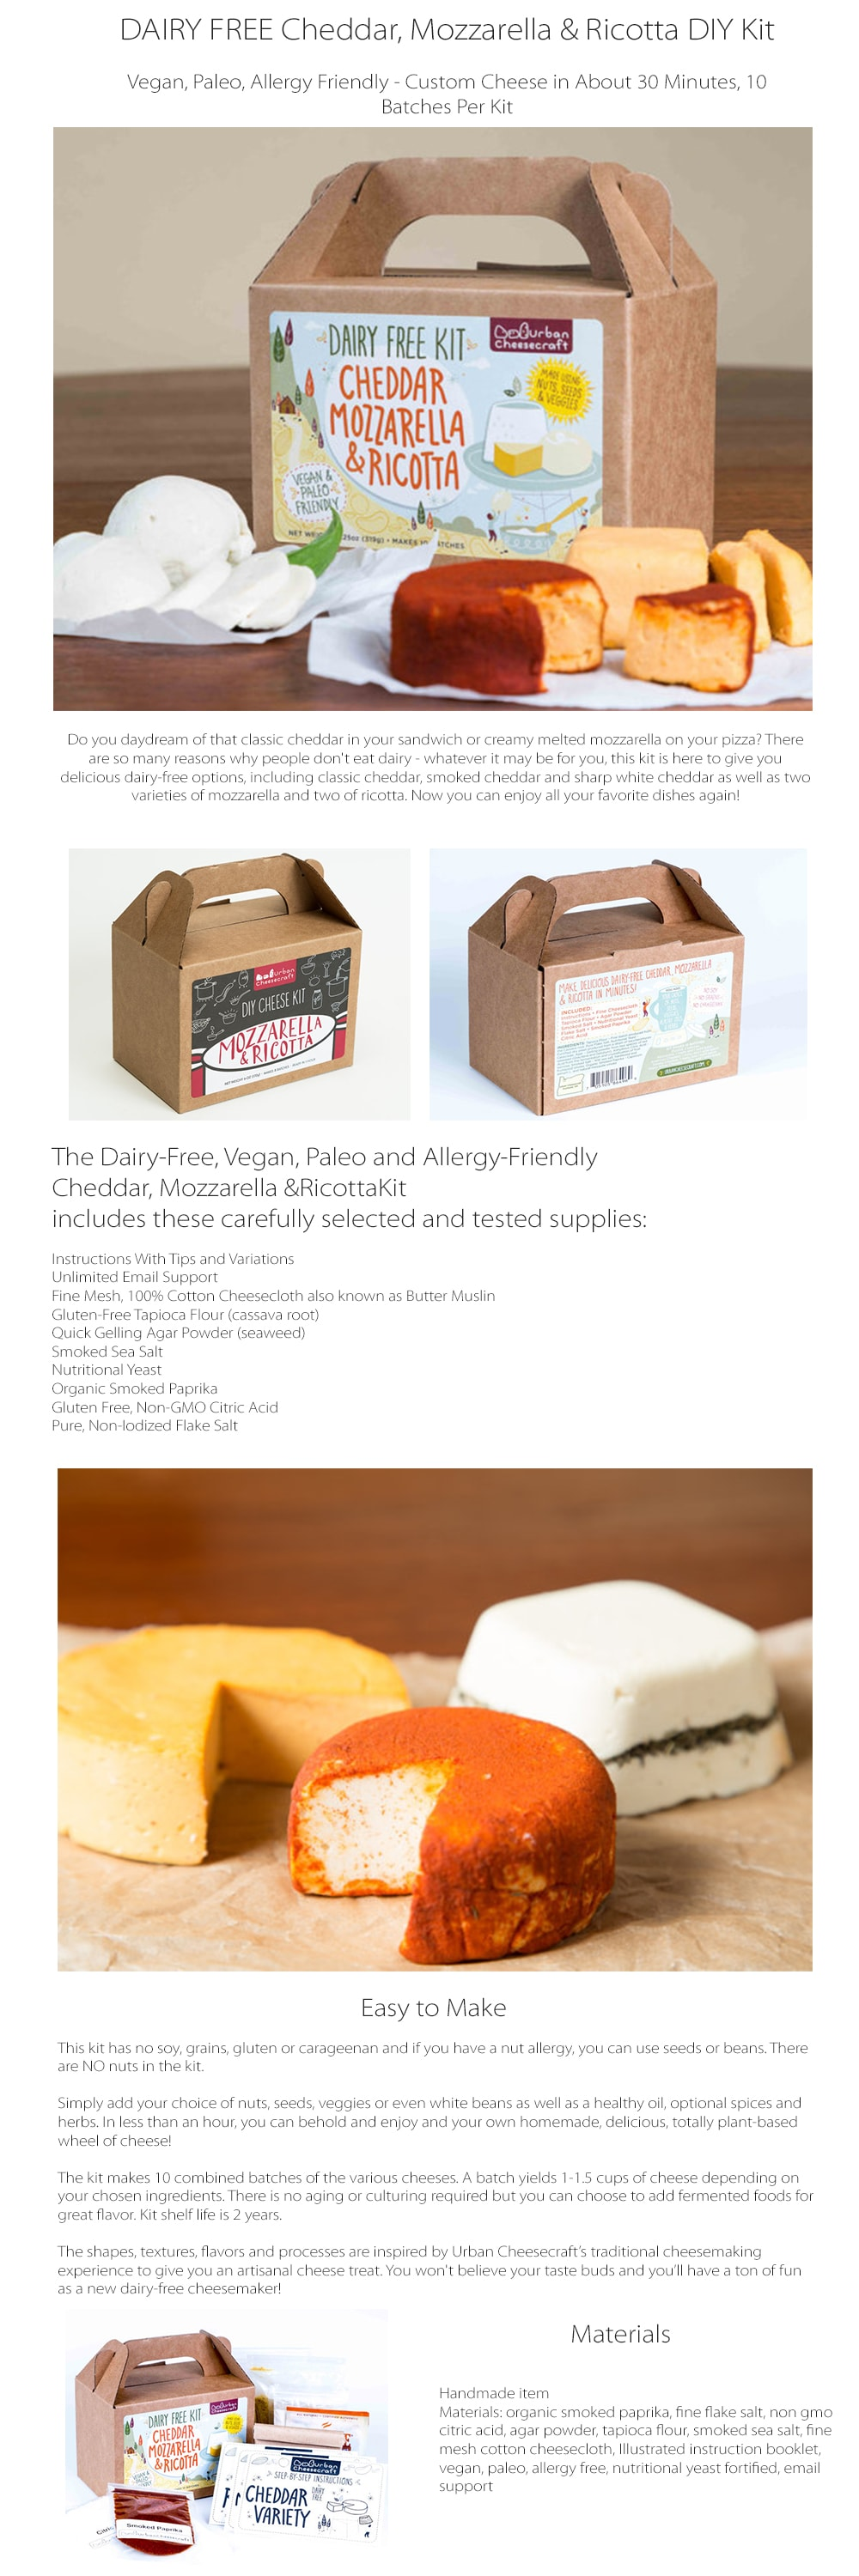 DAIRY FREE Cheddar, Mozzarella & Ricotta DIY Kit Custom Cheese in About 30 Minutes